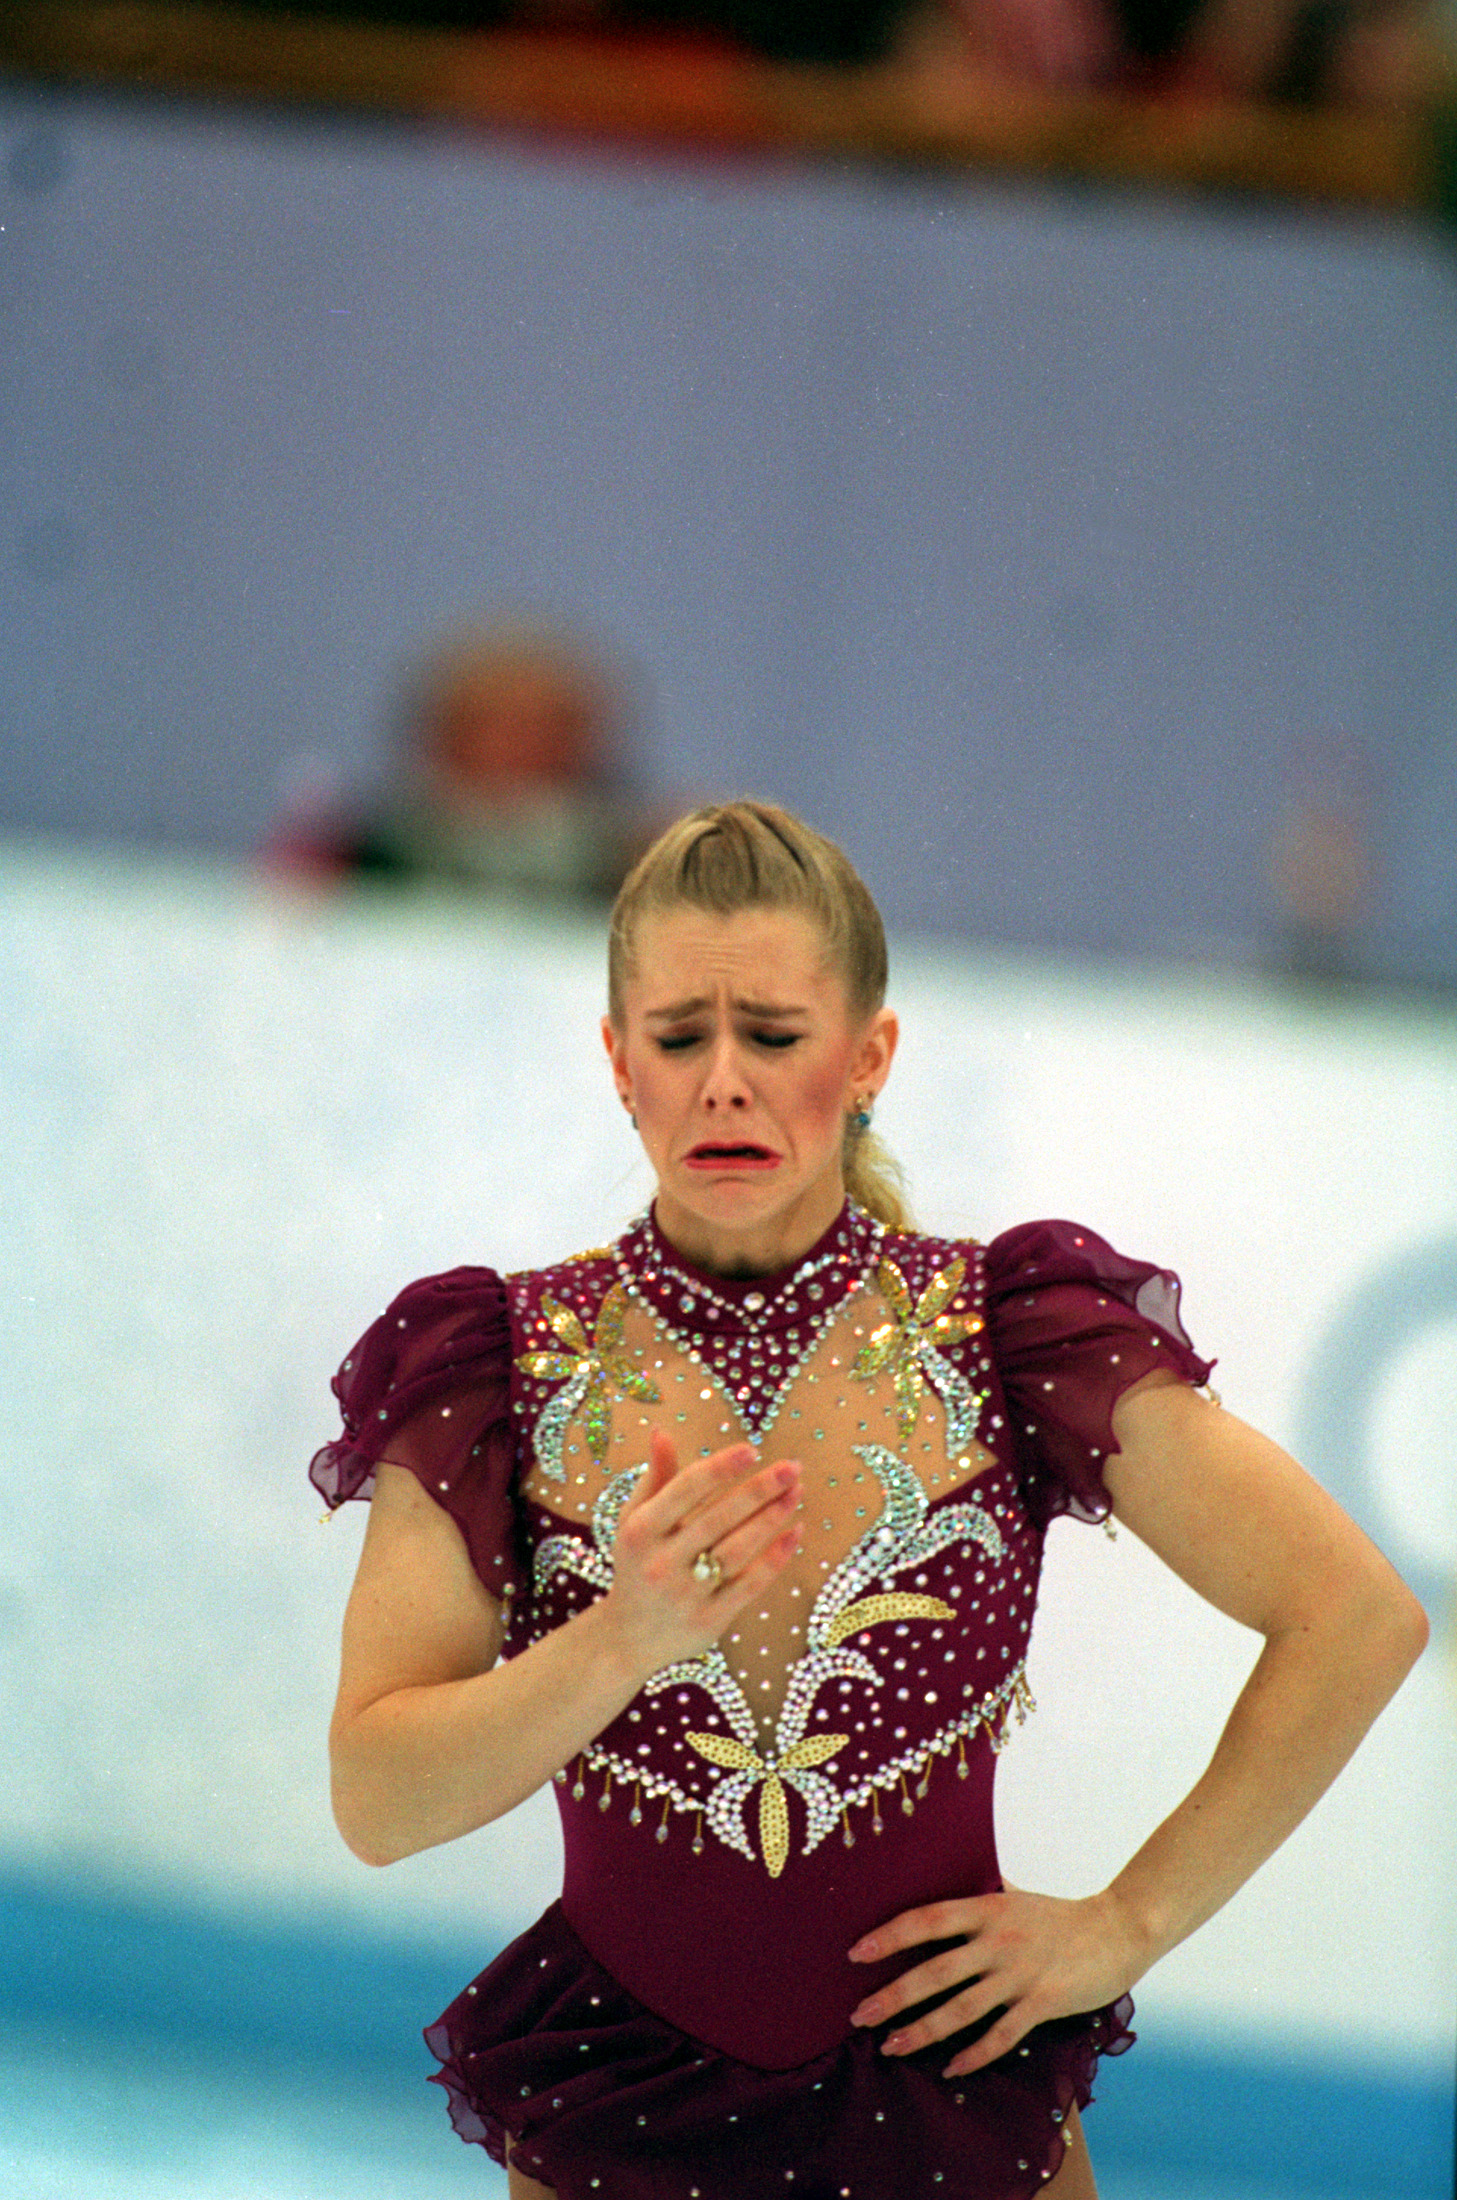 23 FEB 1994:  TONYA HARDING OF THE UNITED STATES LEAVES THE ICE IN TEARS, INTERUPTING HER FREE PROGRAM AT THE 1994 LILLEHAMMER WINTER OLYMPICS.  AFTER CONSULTING THE JUDGES SHE WAS ALLOWED MORE TIME TO REPAIR HER BOOT LACE AND RETURNED TO FINISH HER PROGR